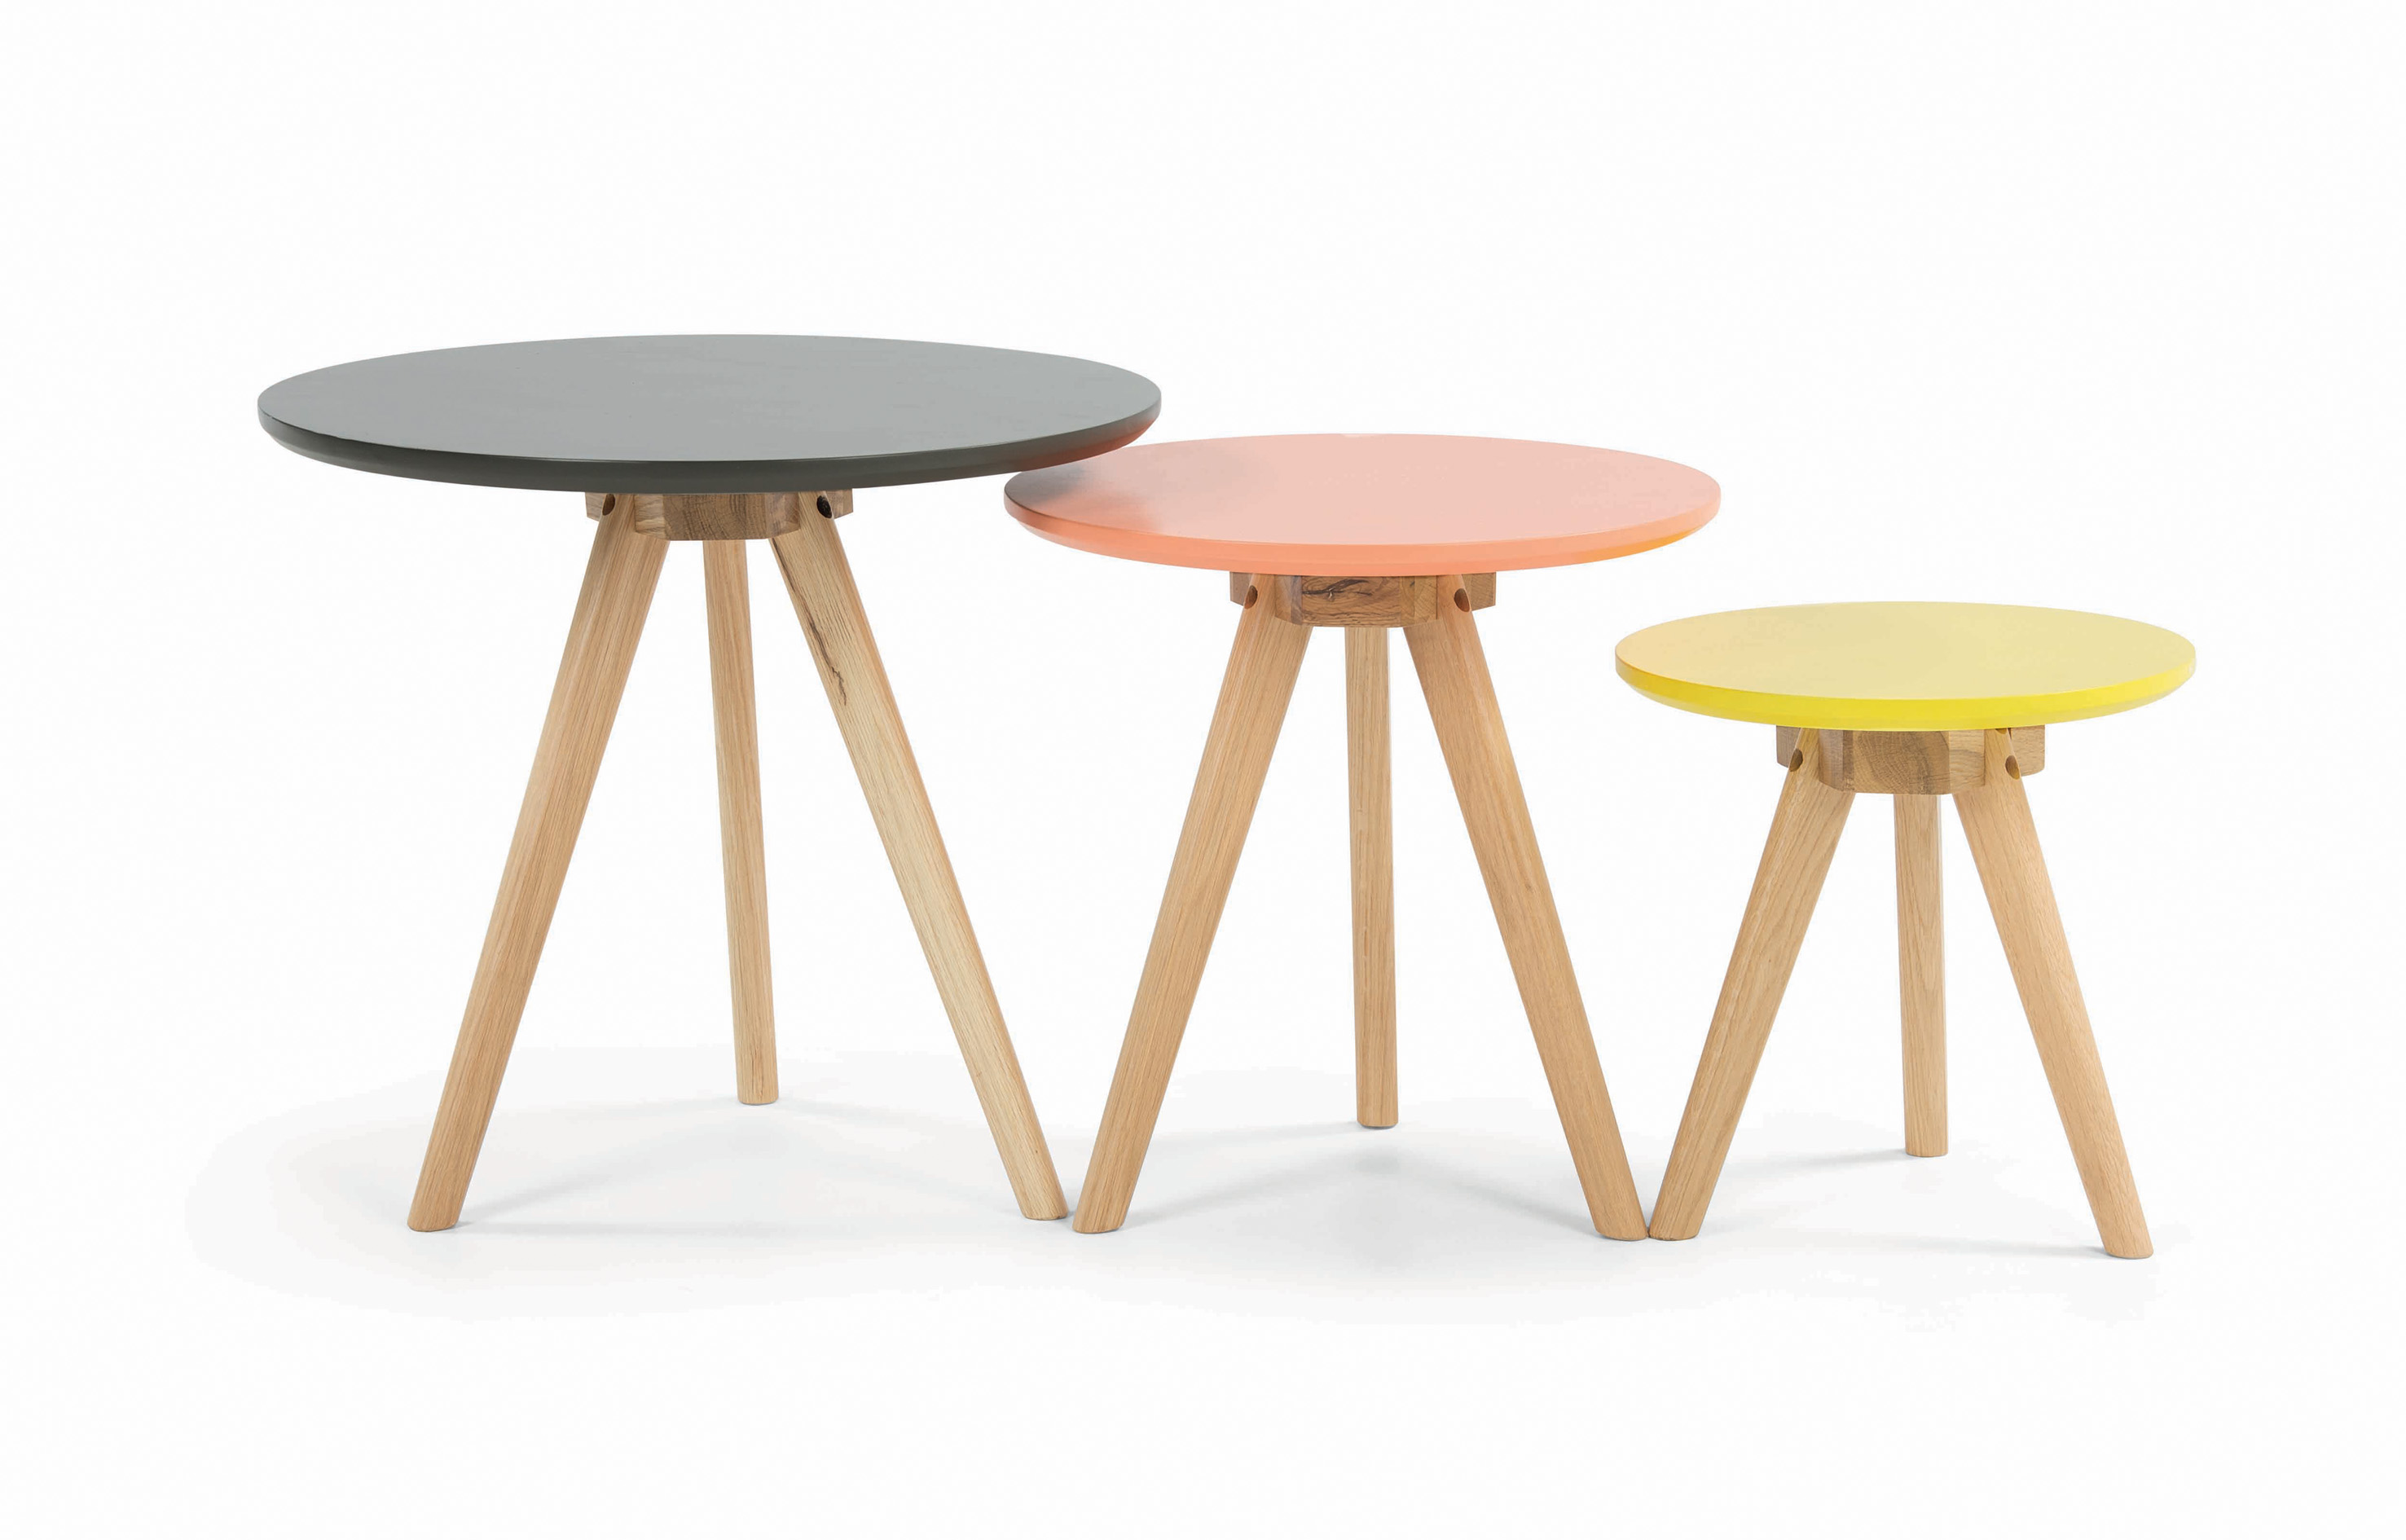 MADE.COM - design special sale Orion Nest of Tables - minimale HR